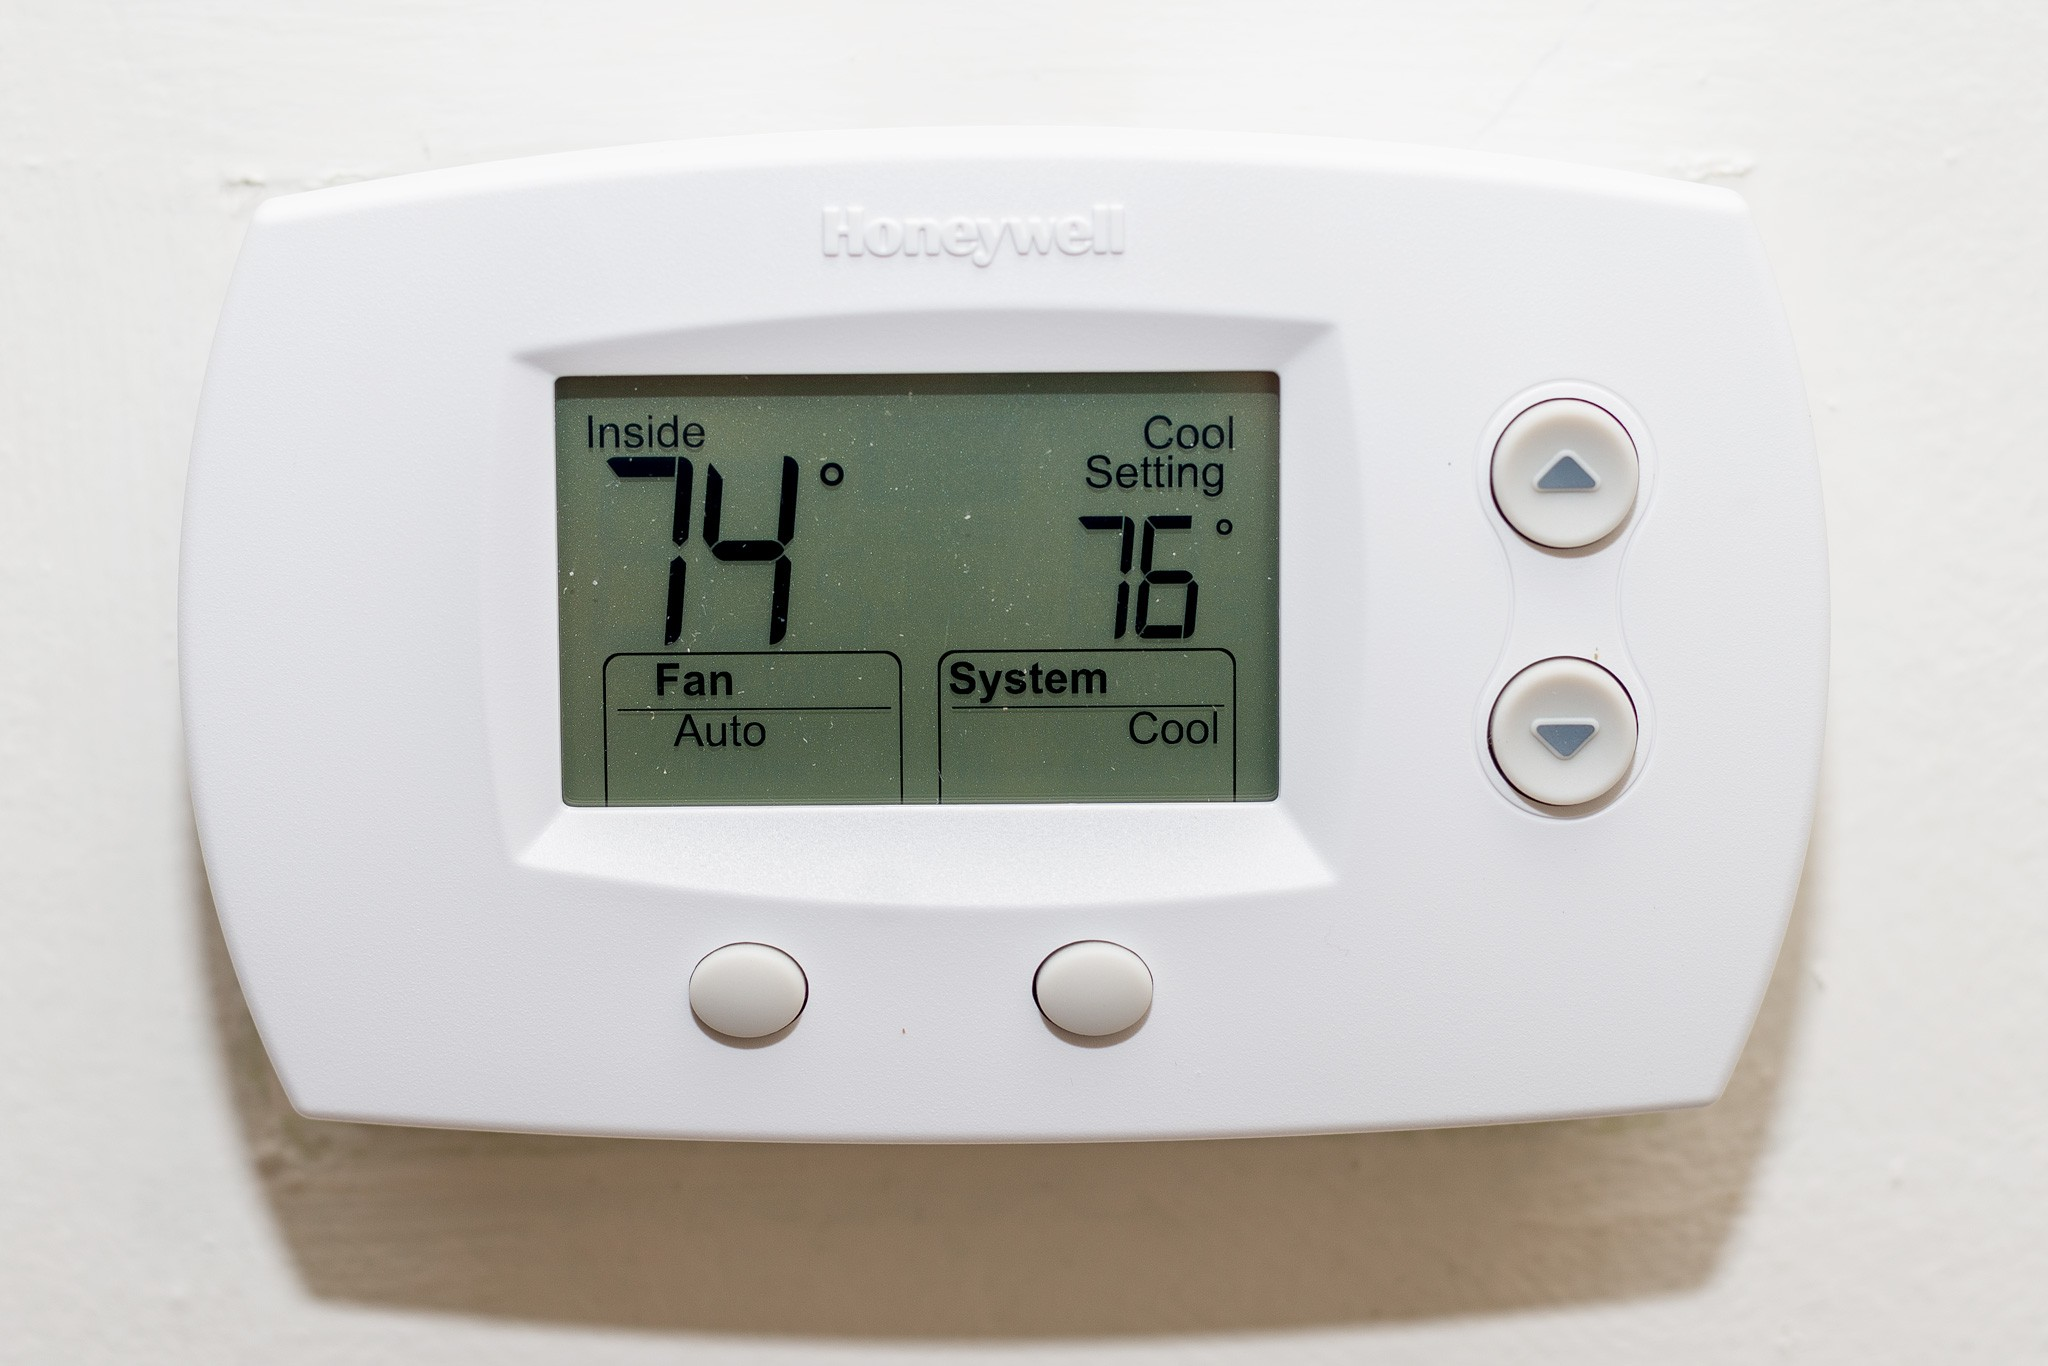 Honeywell Digital Thermostat Manual 5000 User Guide That Honeywell Thermostat Manual Images Gallery